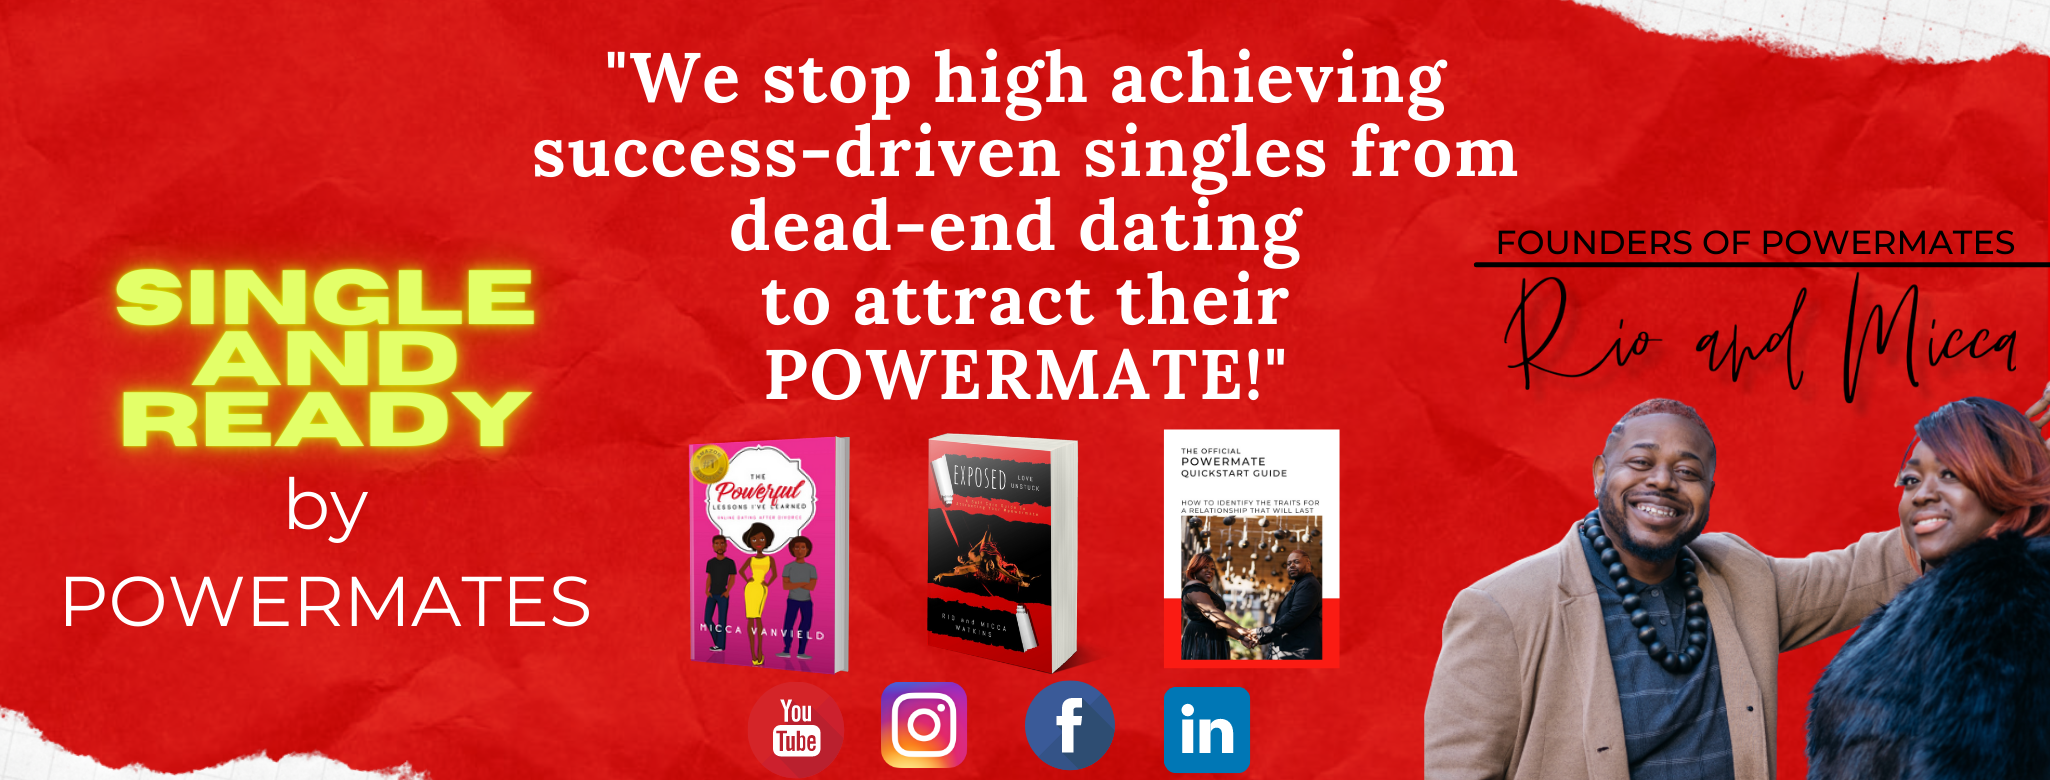 Image to join Single and Ready by Powermates group on Facebook